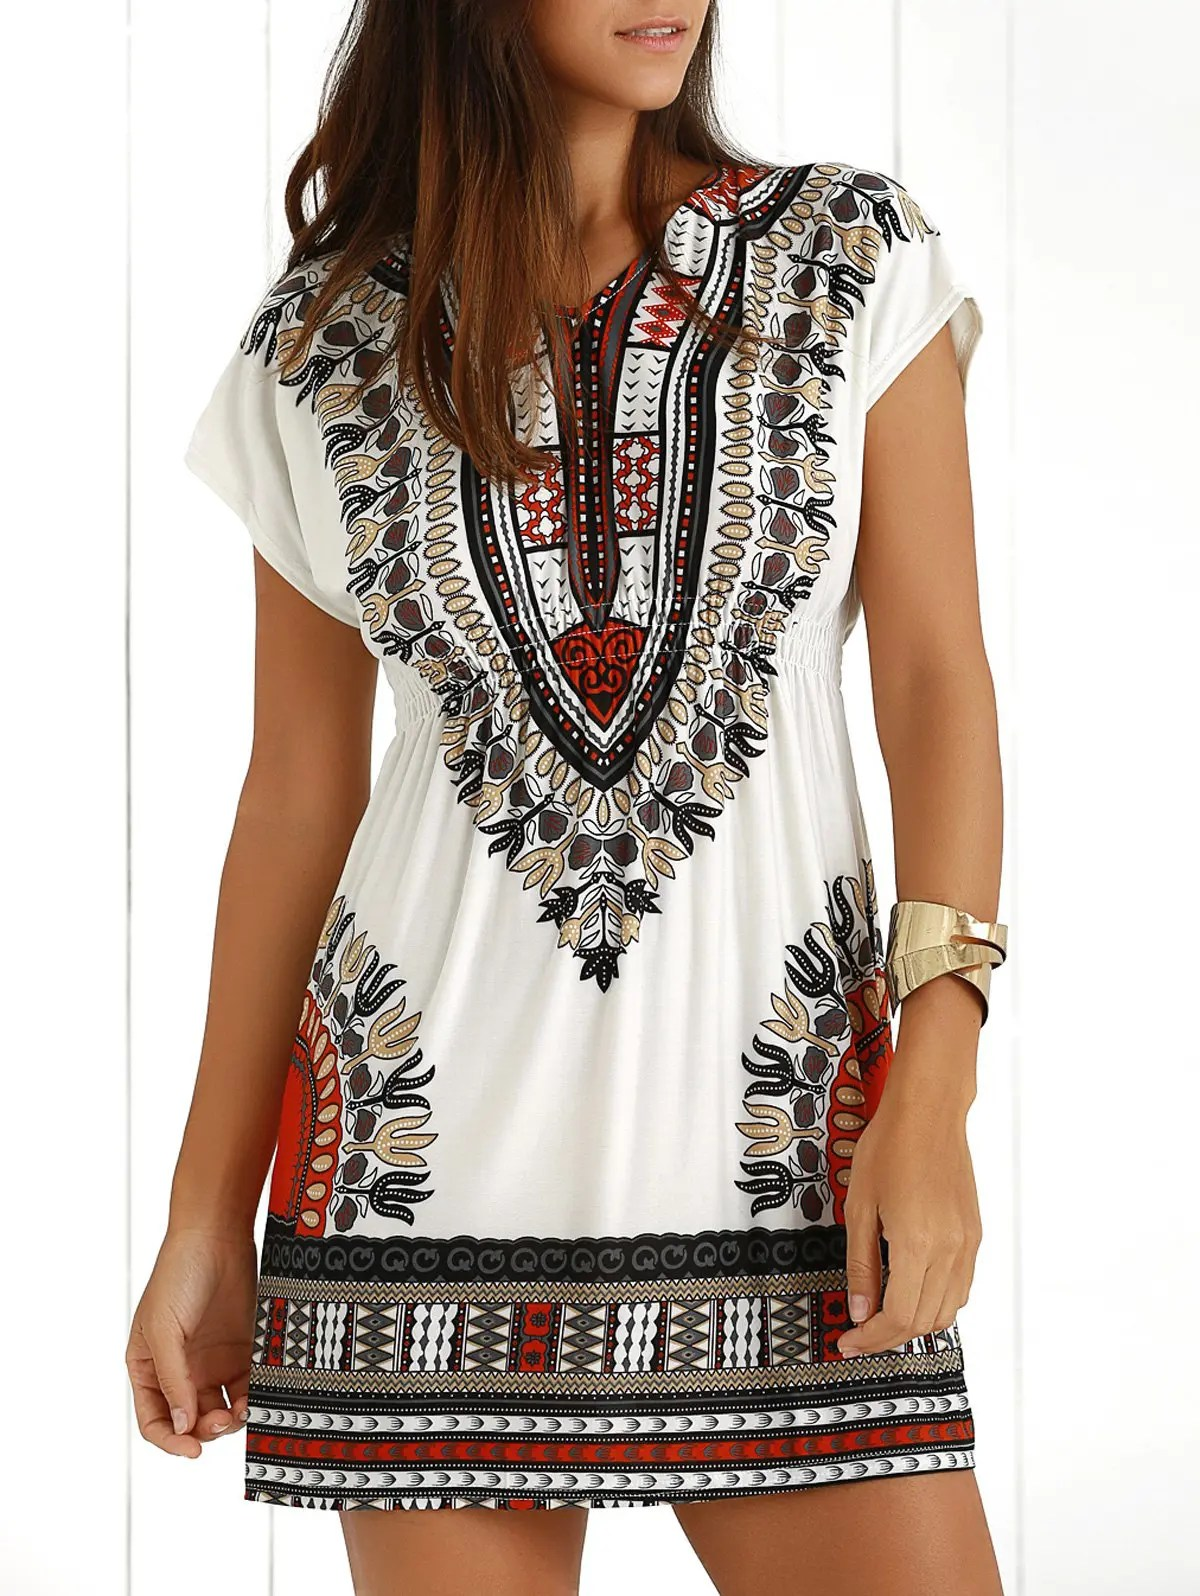 Casual Ethnic Summer Mini Dress In Jacinth One Size